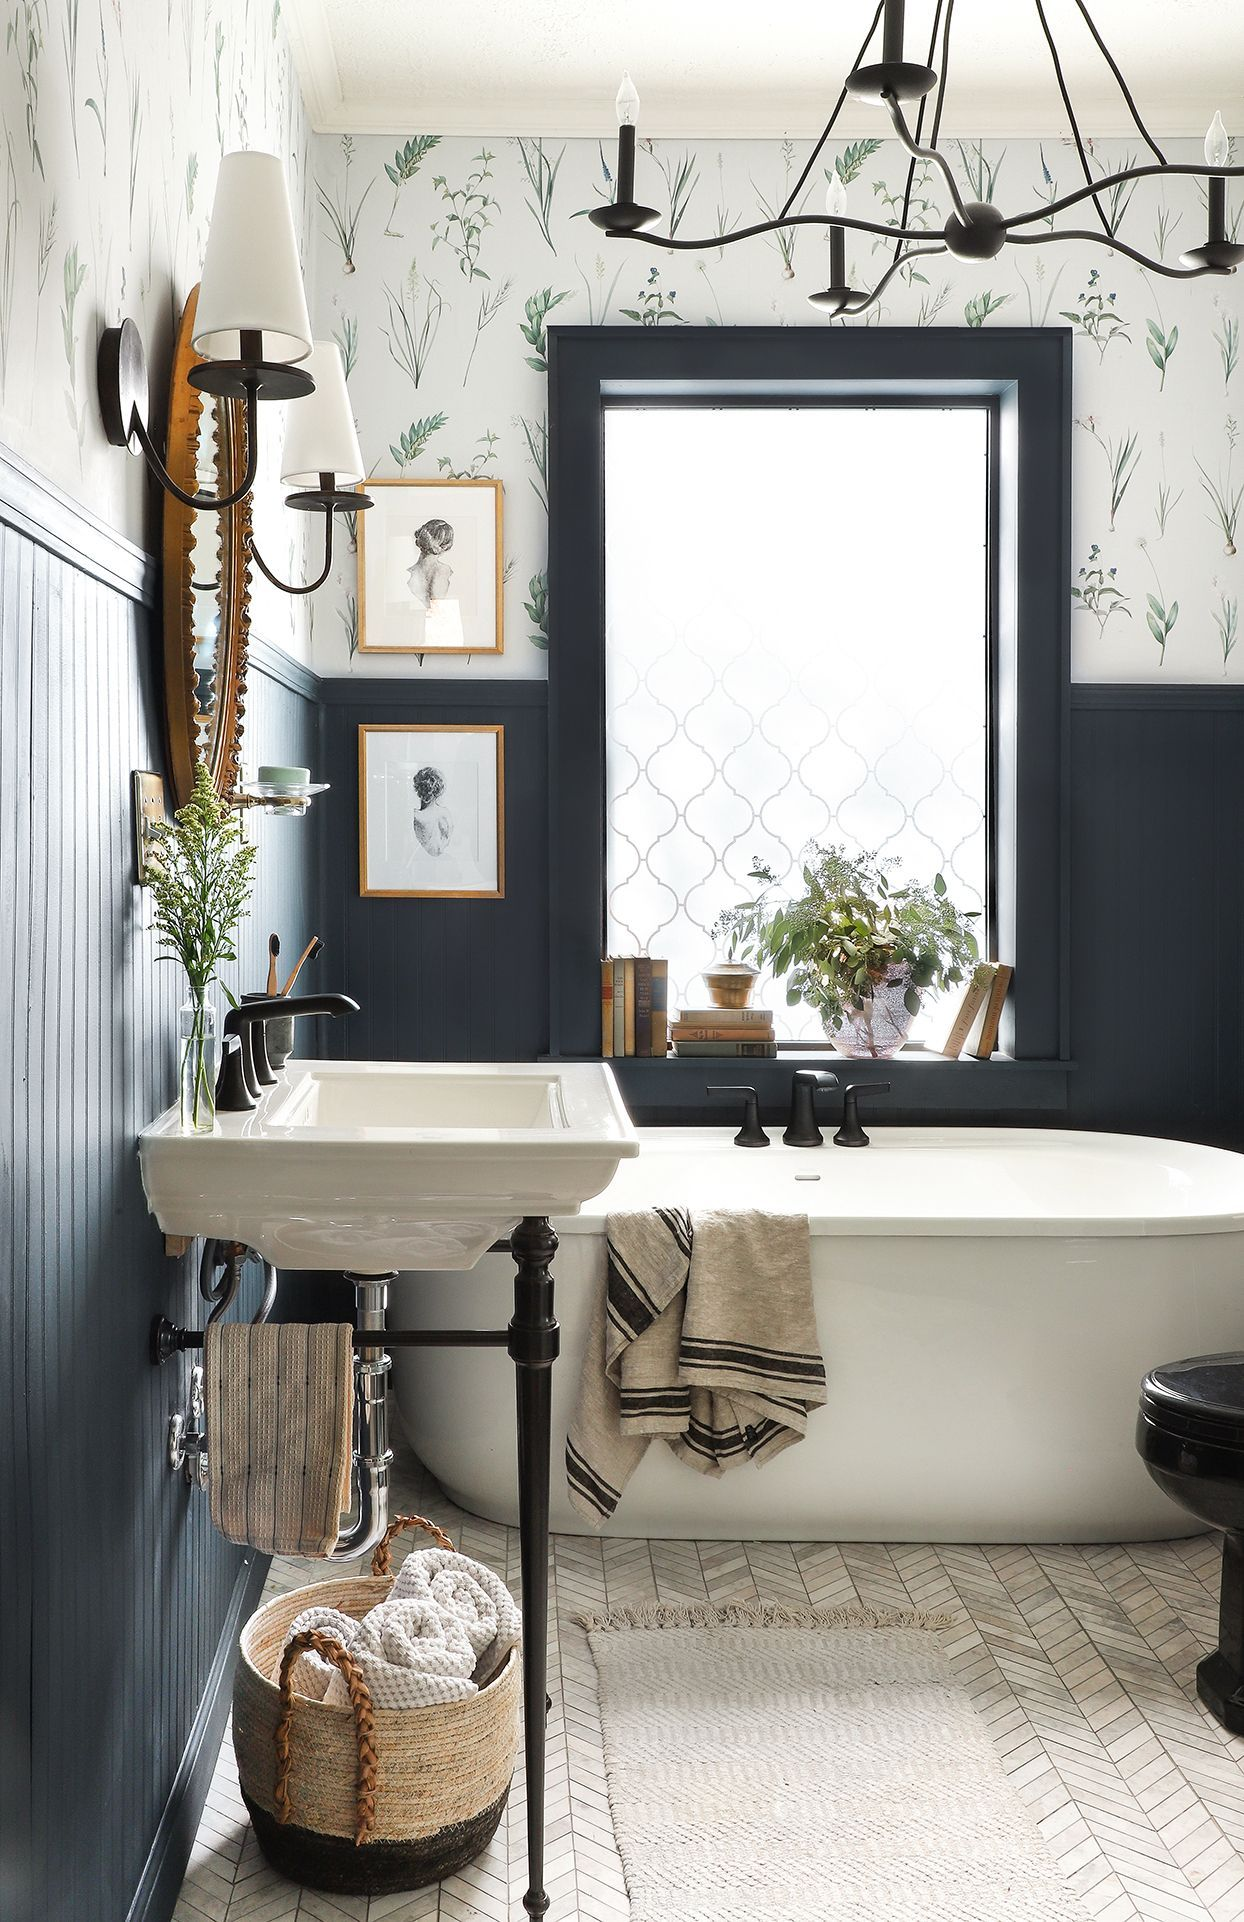 jenni from i spy diy reworked the small upstairs bathroom on home inspirations this year the perfect dream bathrooms diy bathroom ideas id=74465